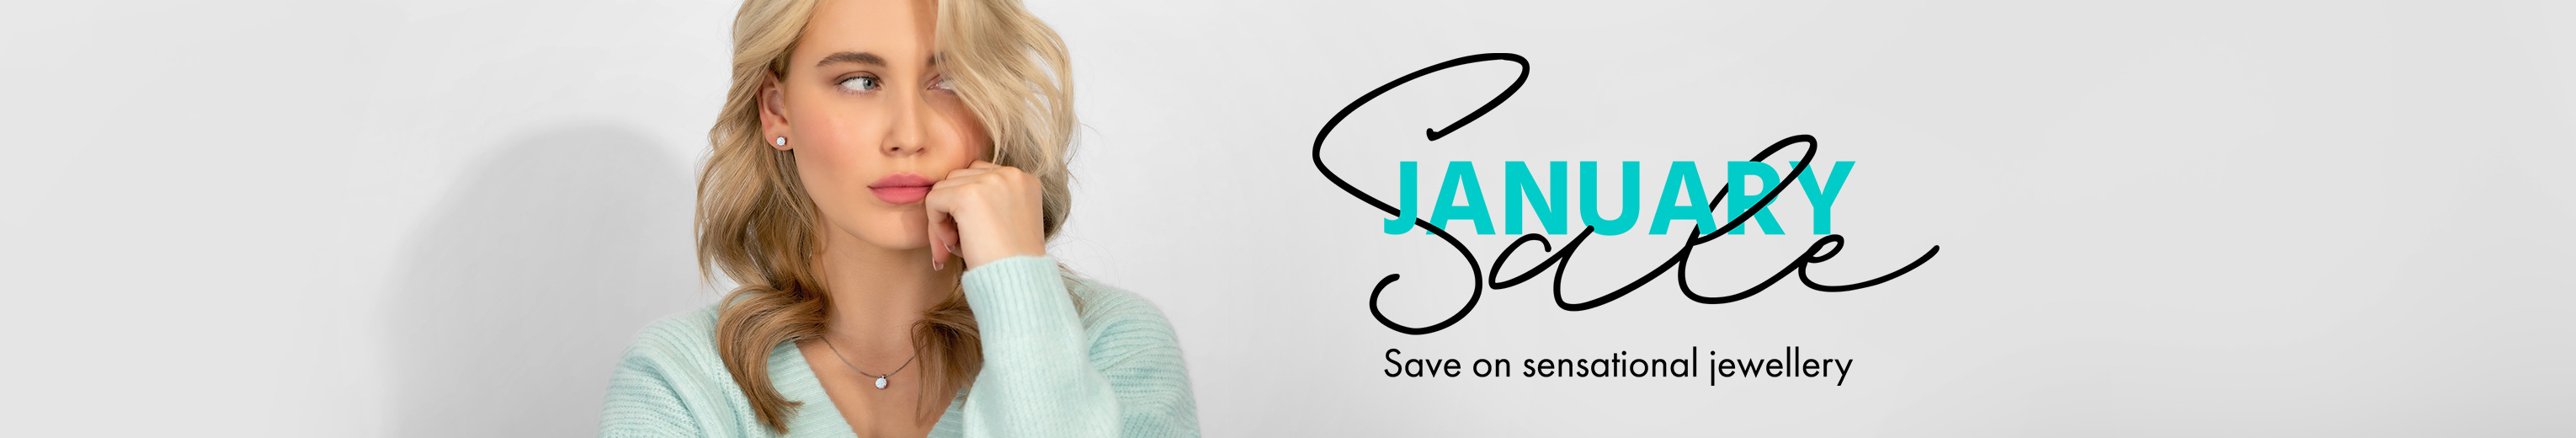 January Sale: Save on Sensational Jewellery